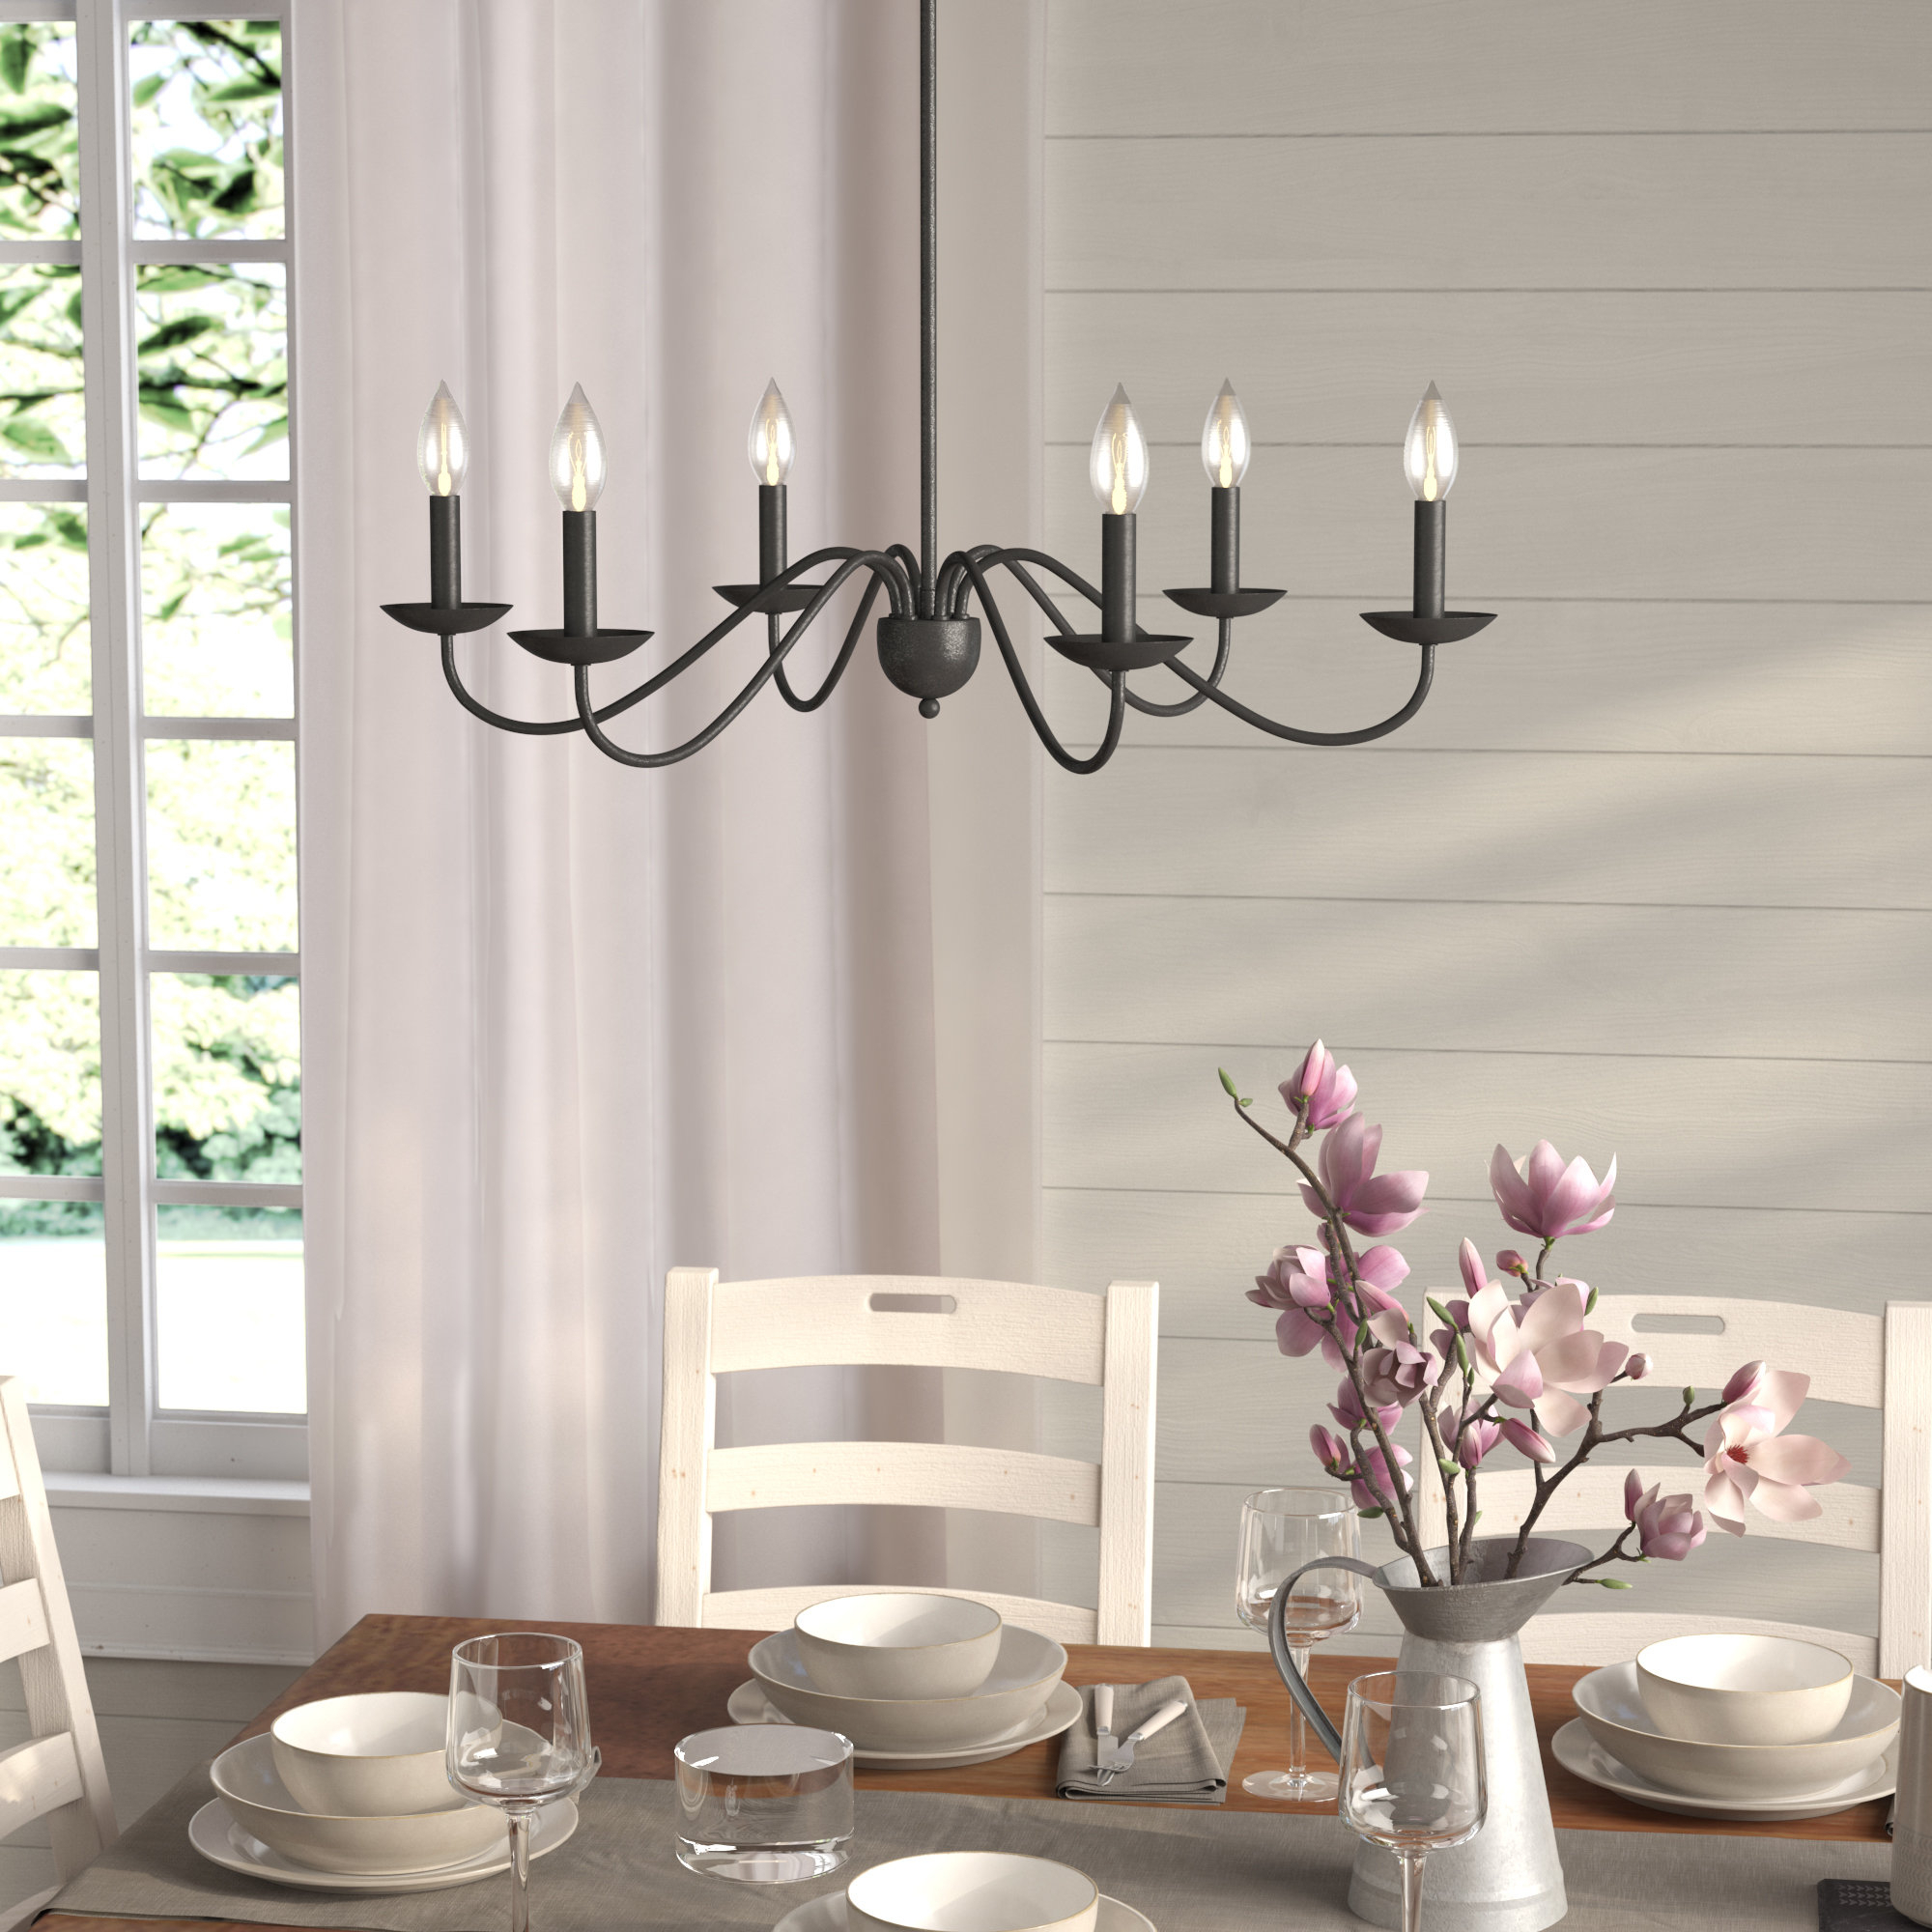 Hamza 6 Light Candle Style Chandeliers Throughout Preferred Perseus 6 Light Candle Style Chandelier (Gallery 4 of 25)